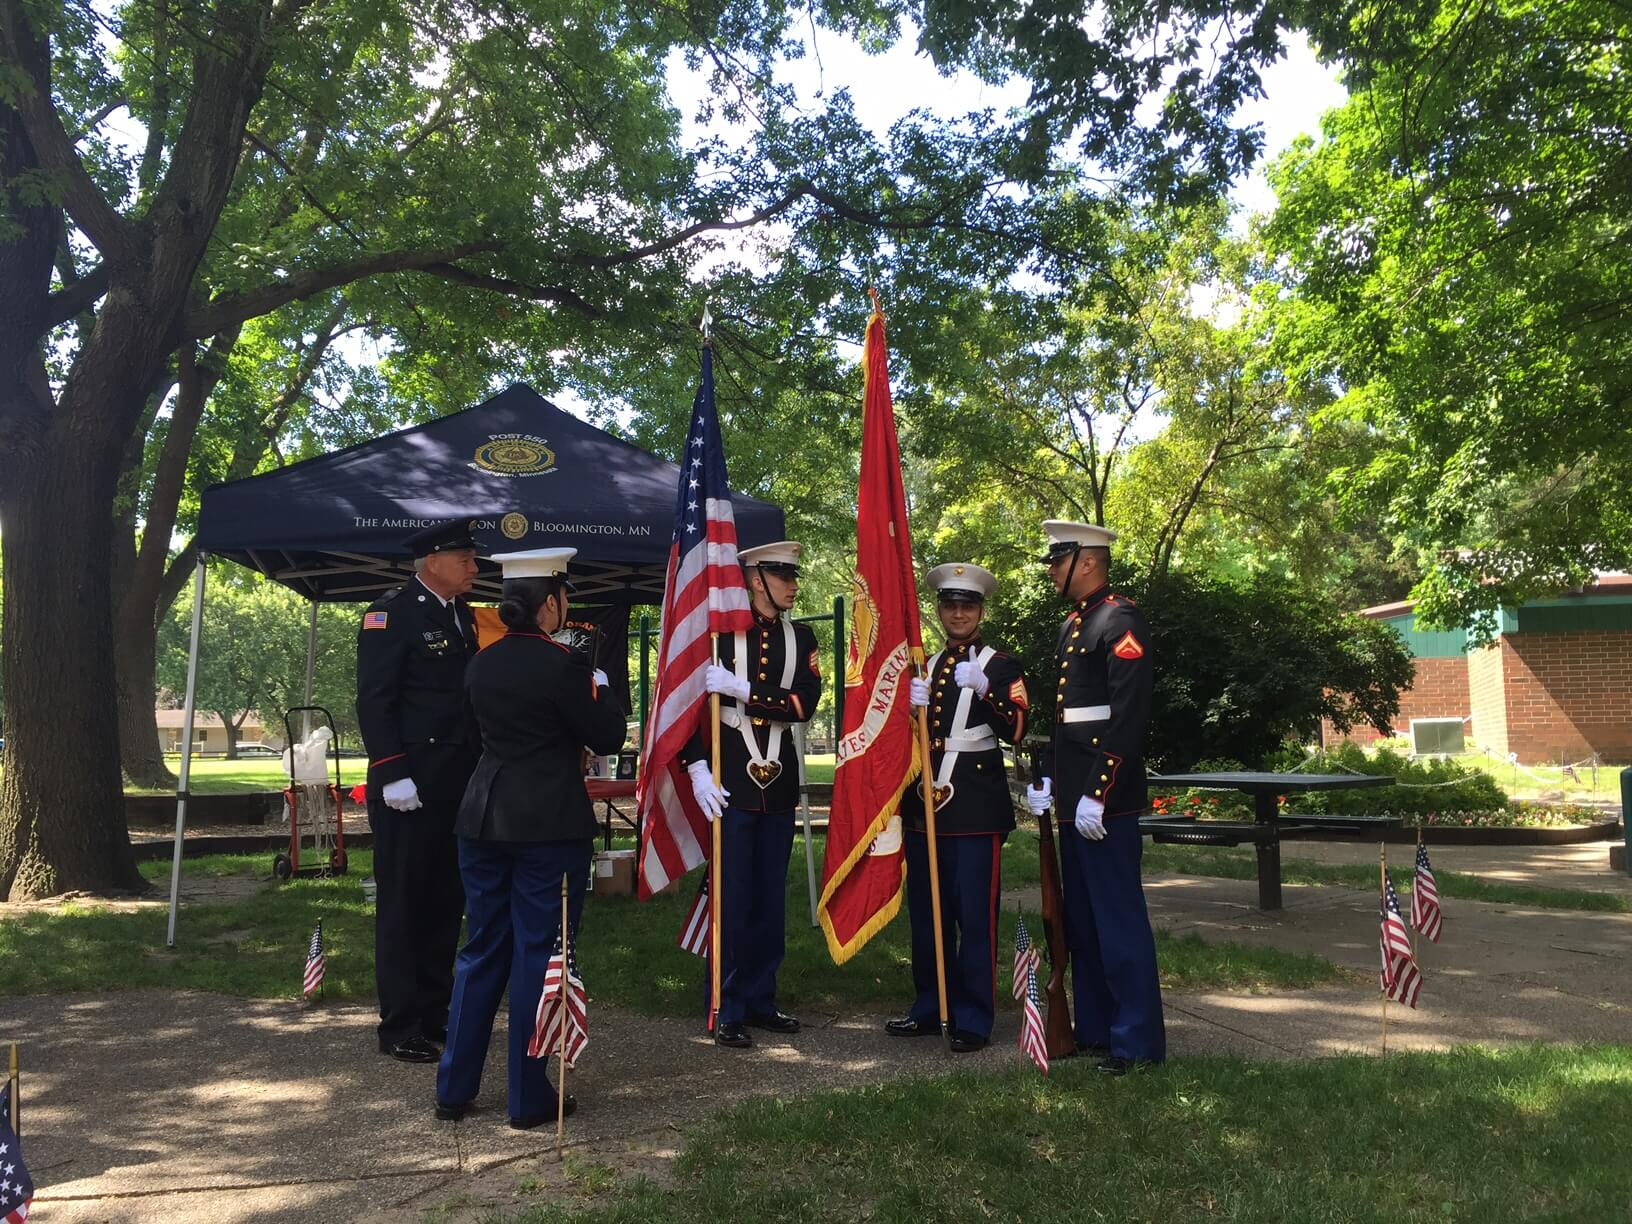 Military color guard with flags.